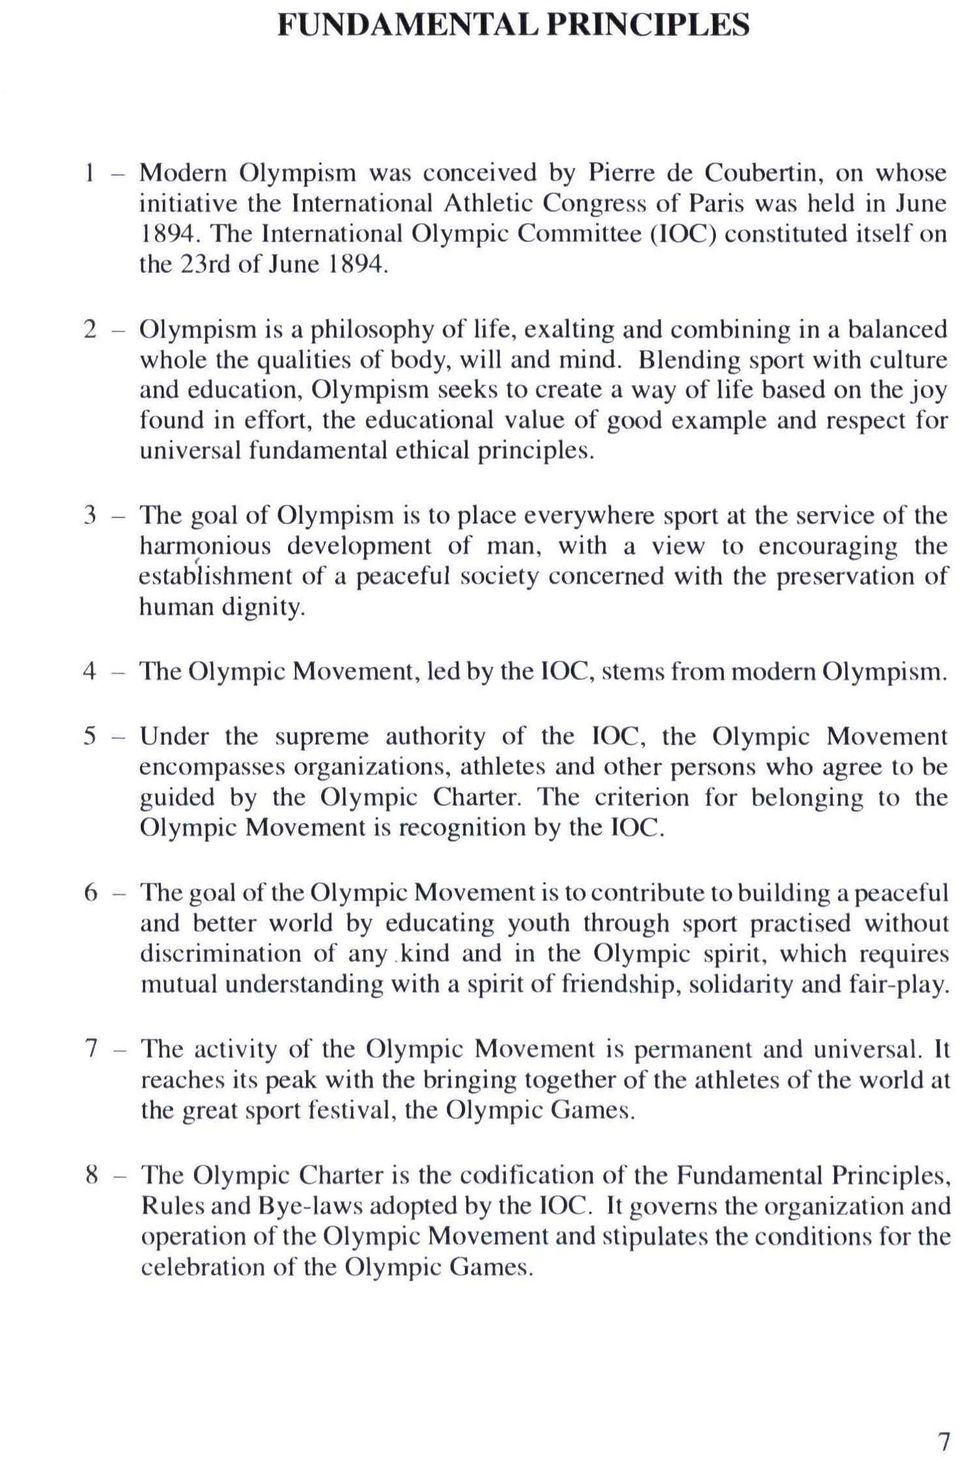 2 - Olympism is a philosophy of life, exalting and combining in a balanced whole the qualities of body, will and mind.